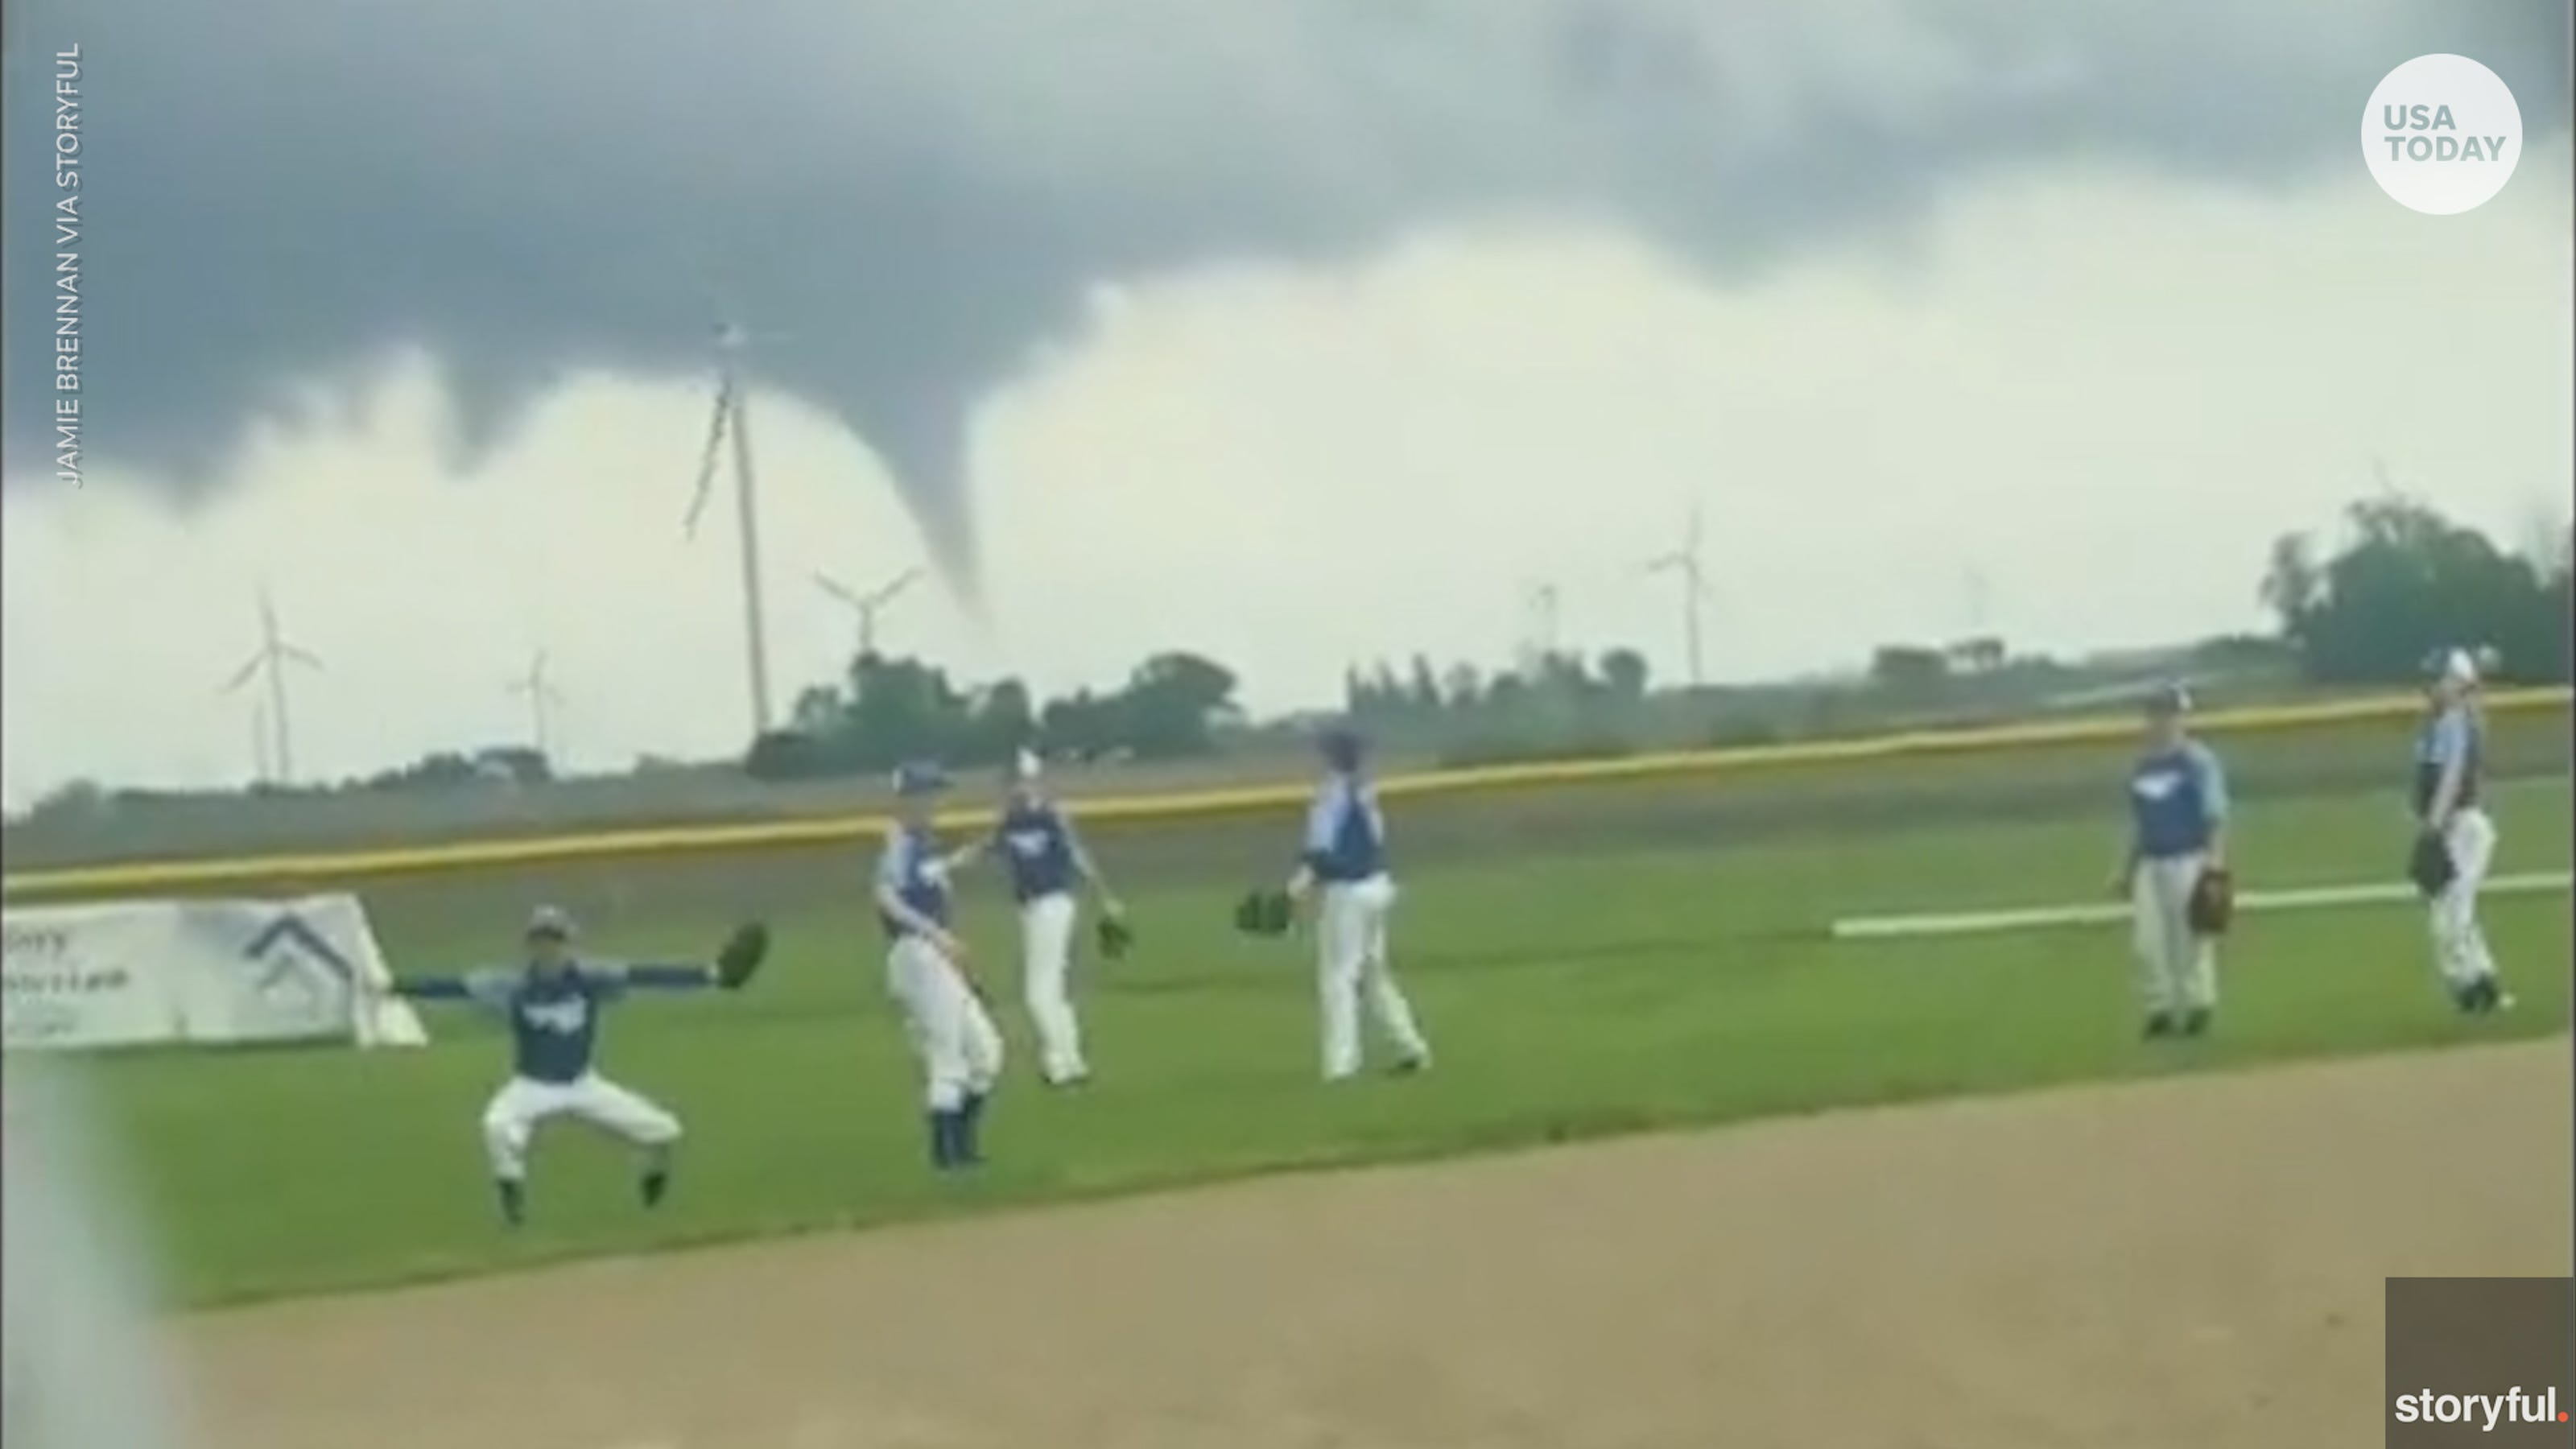 Baseball Players Keep Practicing With Apparent Tornado